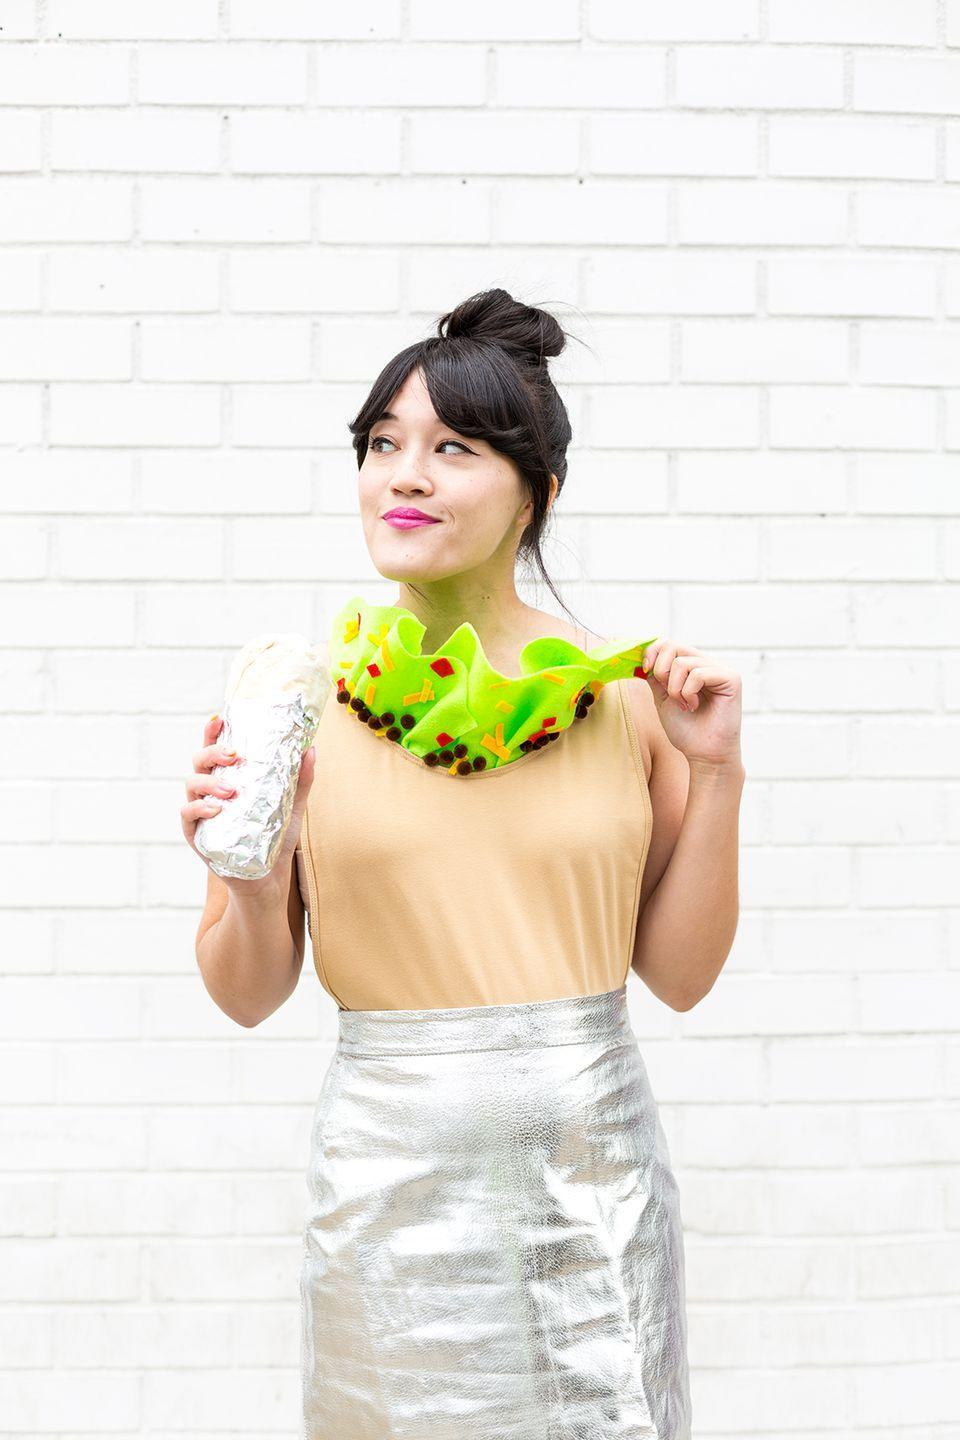 """<p>This creative costume only takes ten minutes to make. Say what??? All you need is a silver skirt, silver shoes, a tan (read: burrito-colored) top and a little bit of handiwork for your collar, and you'll be good to go.</p><p><em><a href=""""http://www.awwsam.com/2017/10/diy-burrito-halloween-costume.html"""" rel=""""nofollow noopener"""" target=""""_blank"""" data-ylk=""""slk:Get the tutorial at Aww Sam »"""" class=""""link rapid-noclick-resp"""">Get the tutorial at Aww Sam »</a></em> </p><p><strong>RELATED</strong>: <a href=""""https://www.goodhousekeeping.com/holidays/halloween-ideas/a33967140/what-should-i-be-for-halloween/"""" rel=""""nofollow noopener"""" target=""""_blank"""" data-ylk=""""slk:Not Sure What to Be for Halloween This Year? Take This Quiz to Find Out"""" class=""""link rapid-noclick-resp"""">Not Sure What to Be for Halloween This Year? Take This Quiz to Find Out</a></p>"""